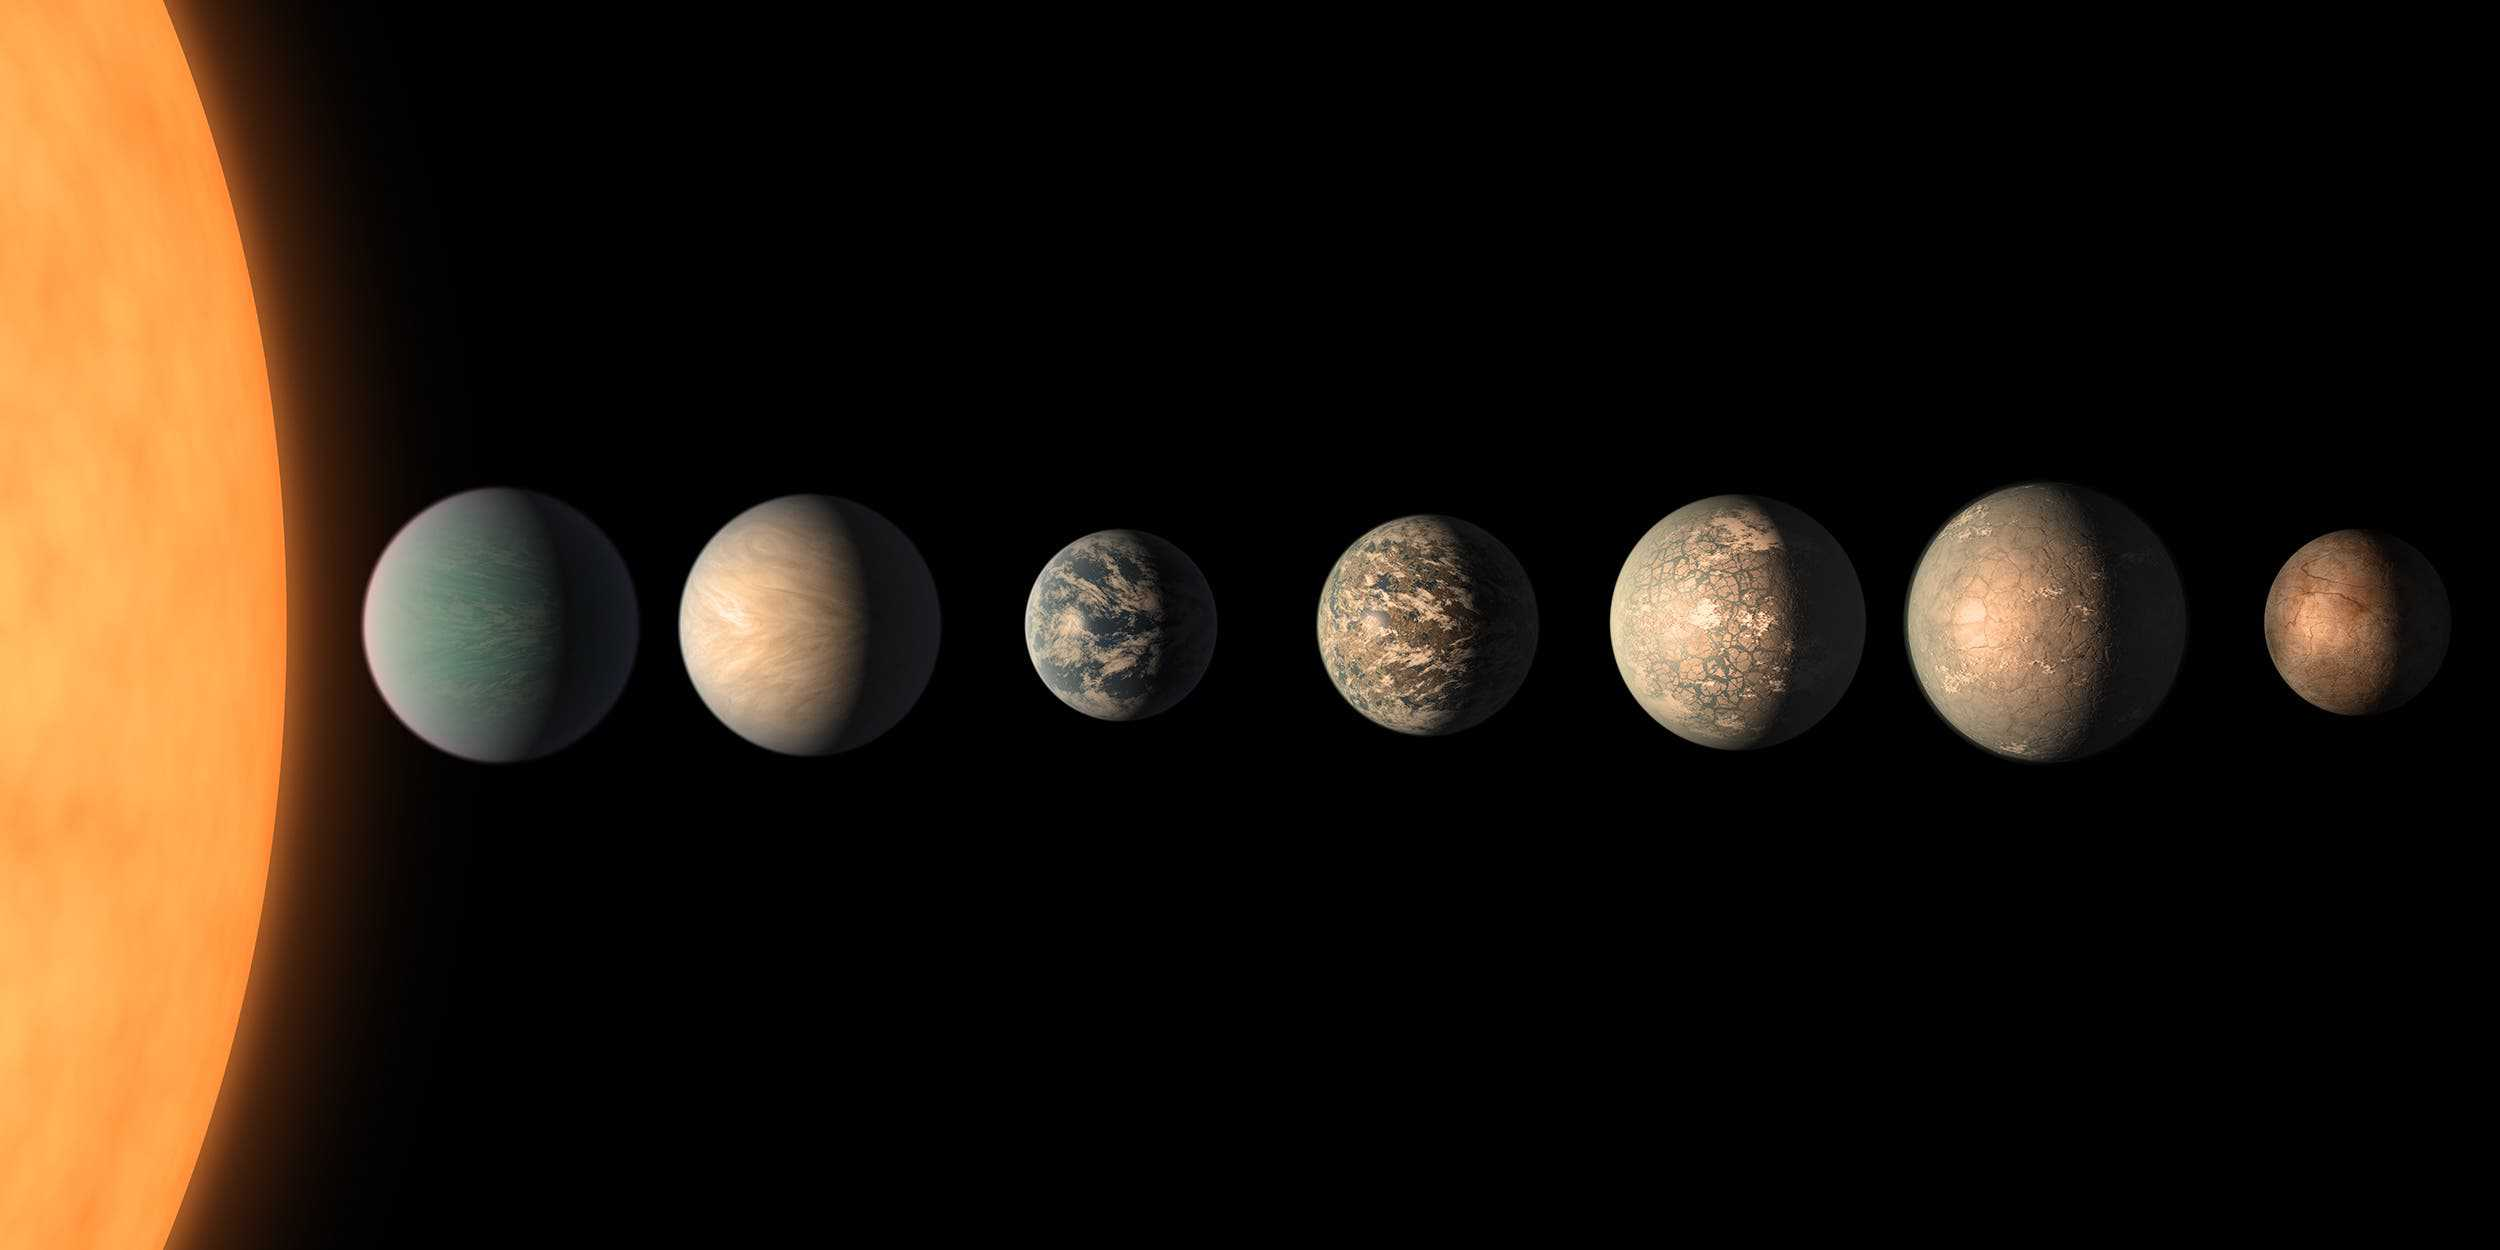 New research shows that the TRAPPIST-1 planets are even ...